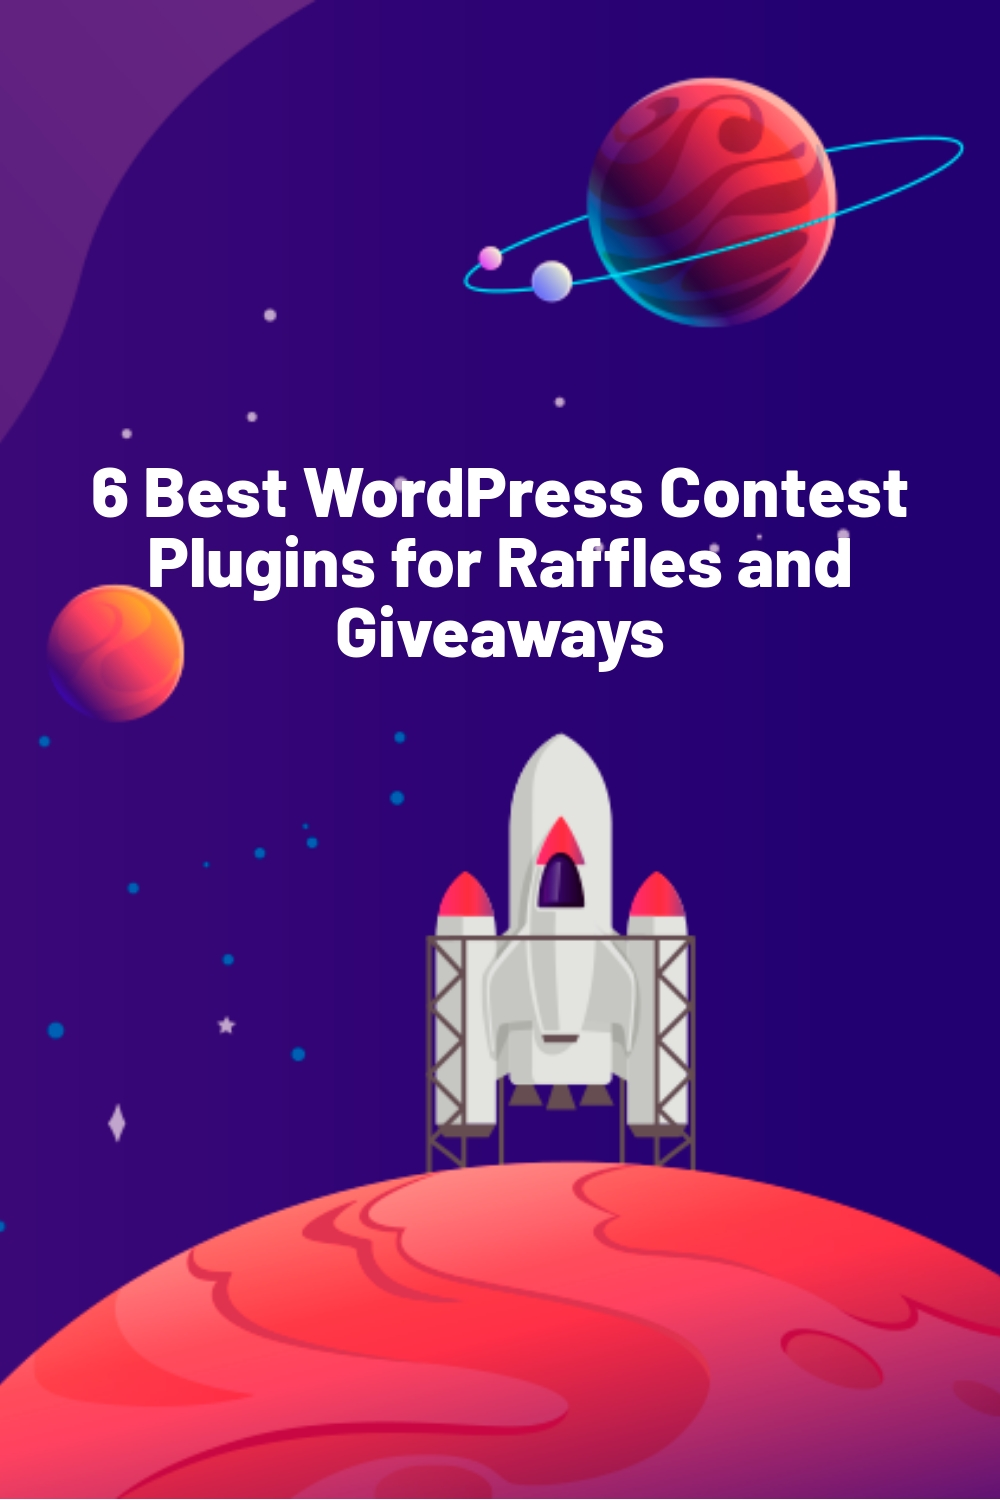 6 Best WordPress Contest Plugins for Raffles and Giveaways